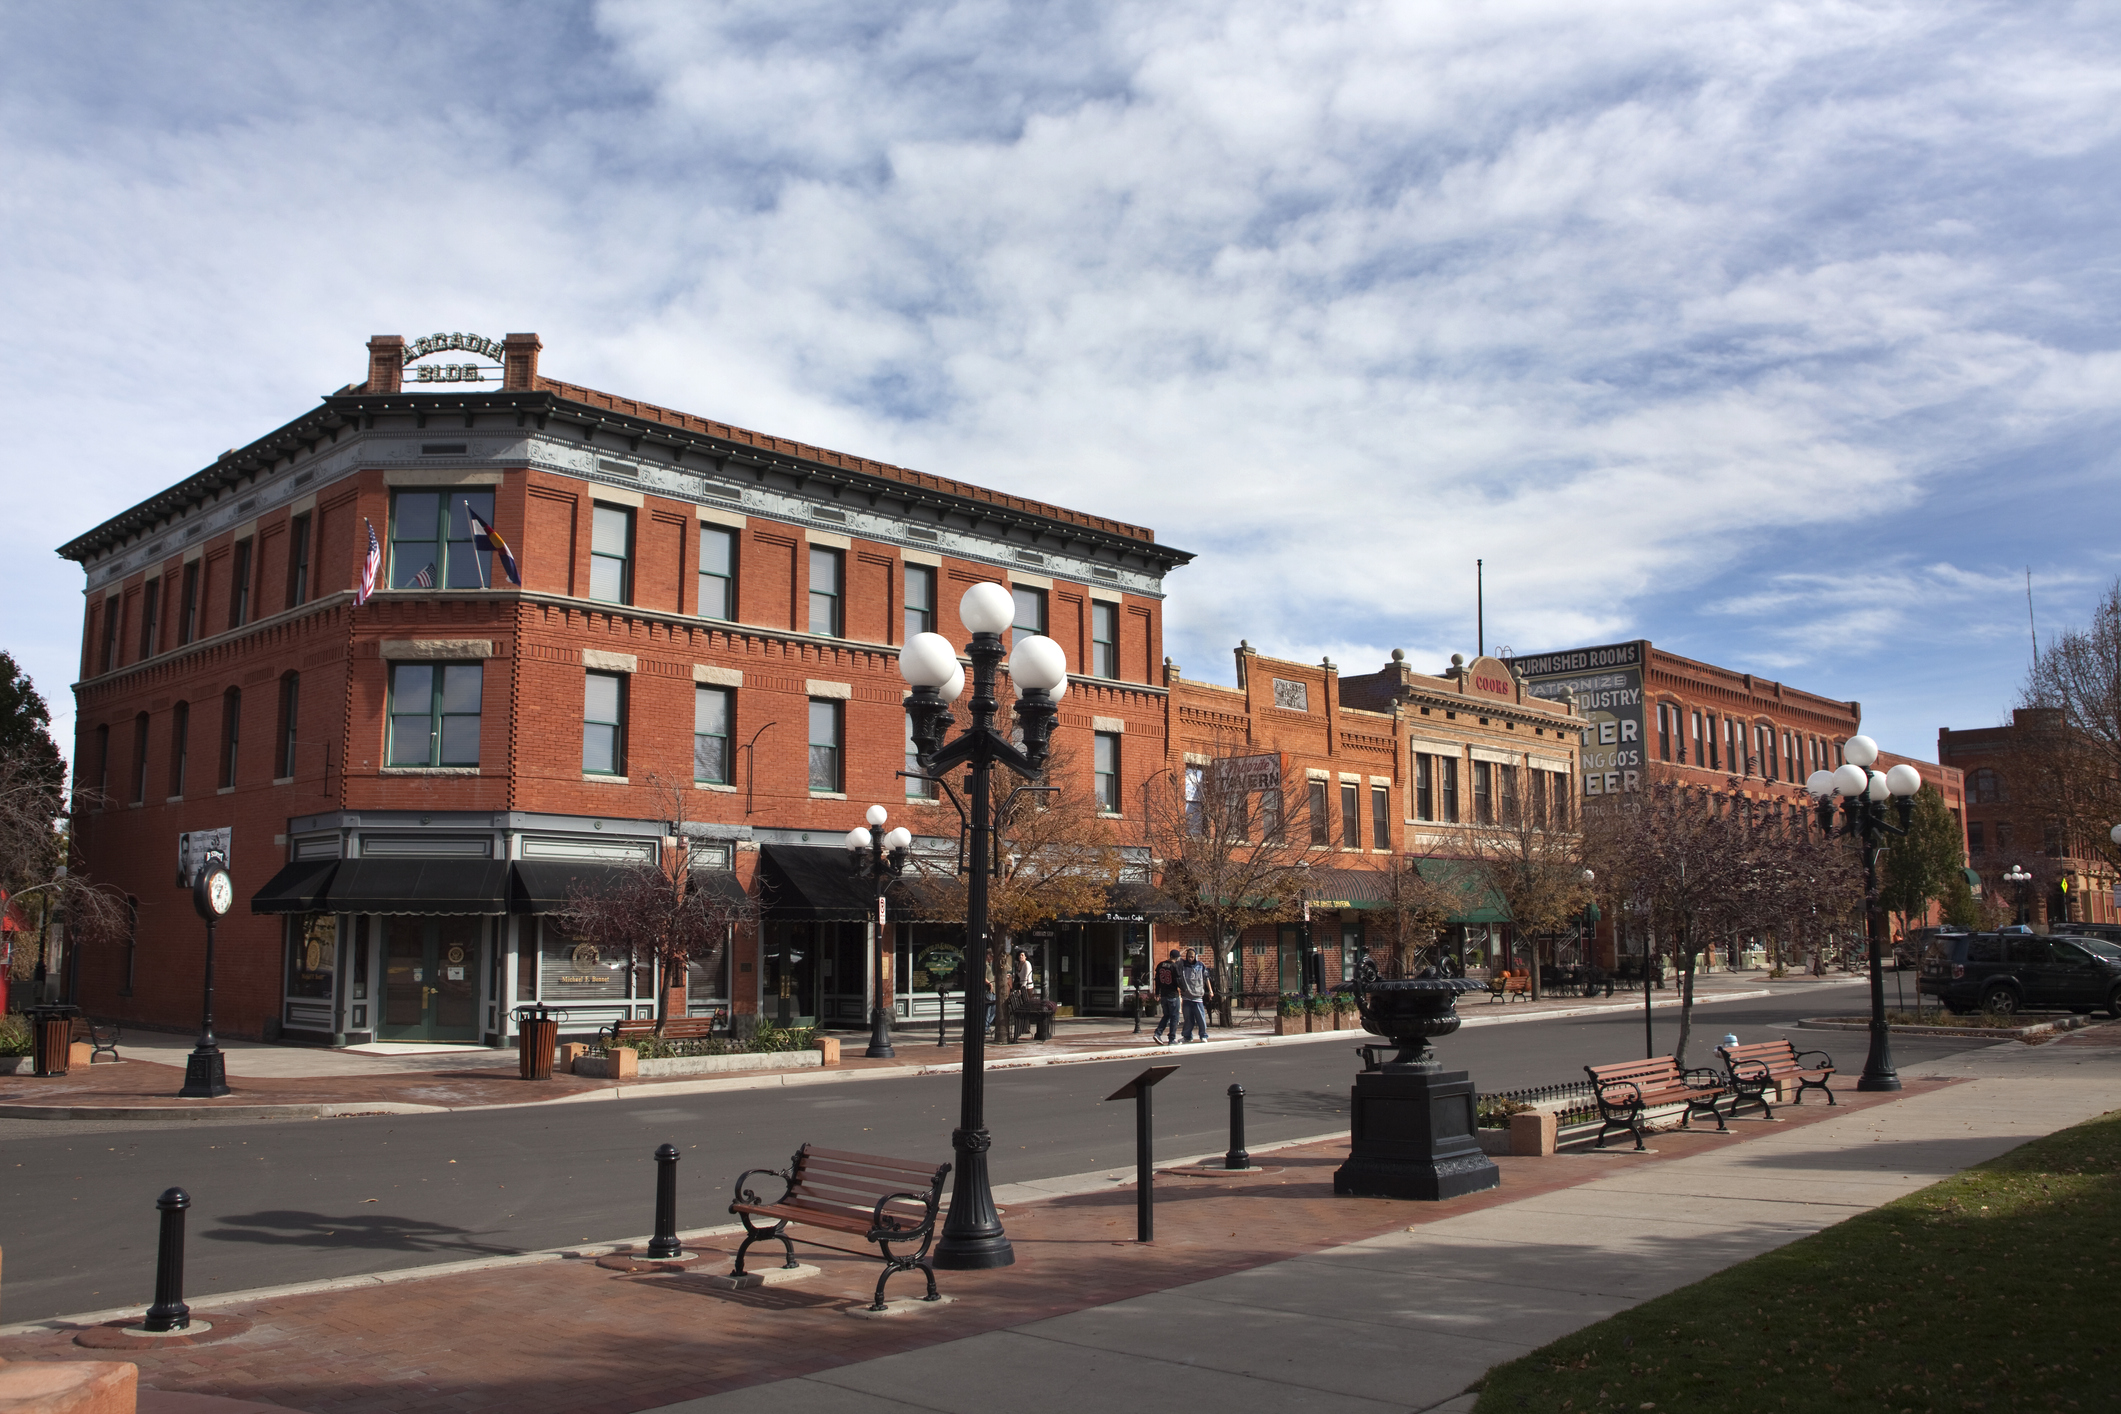 The Union Avenue Historic District is part of Pueblo's Creative Corridor, an area of the city where you'll find galleries, cafes, sculptures, live music and museums, including Buell Children's Museum, ranked the 2nd best children's art museum in the country.